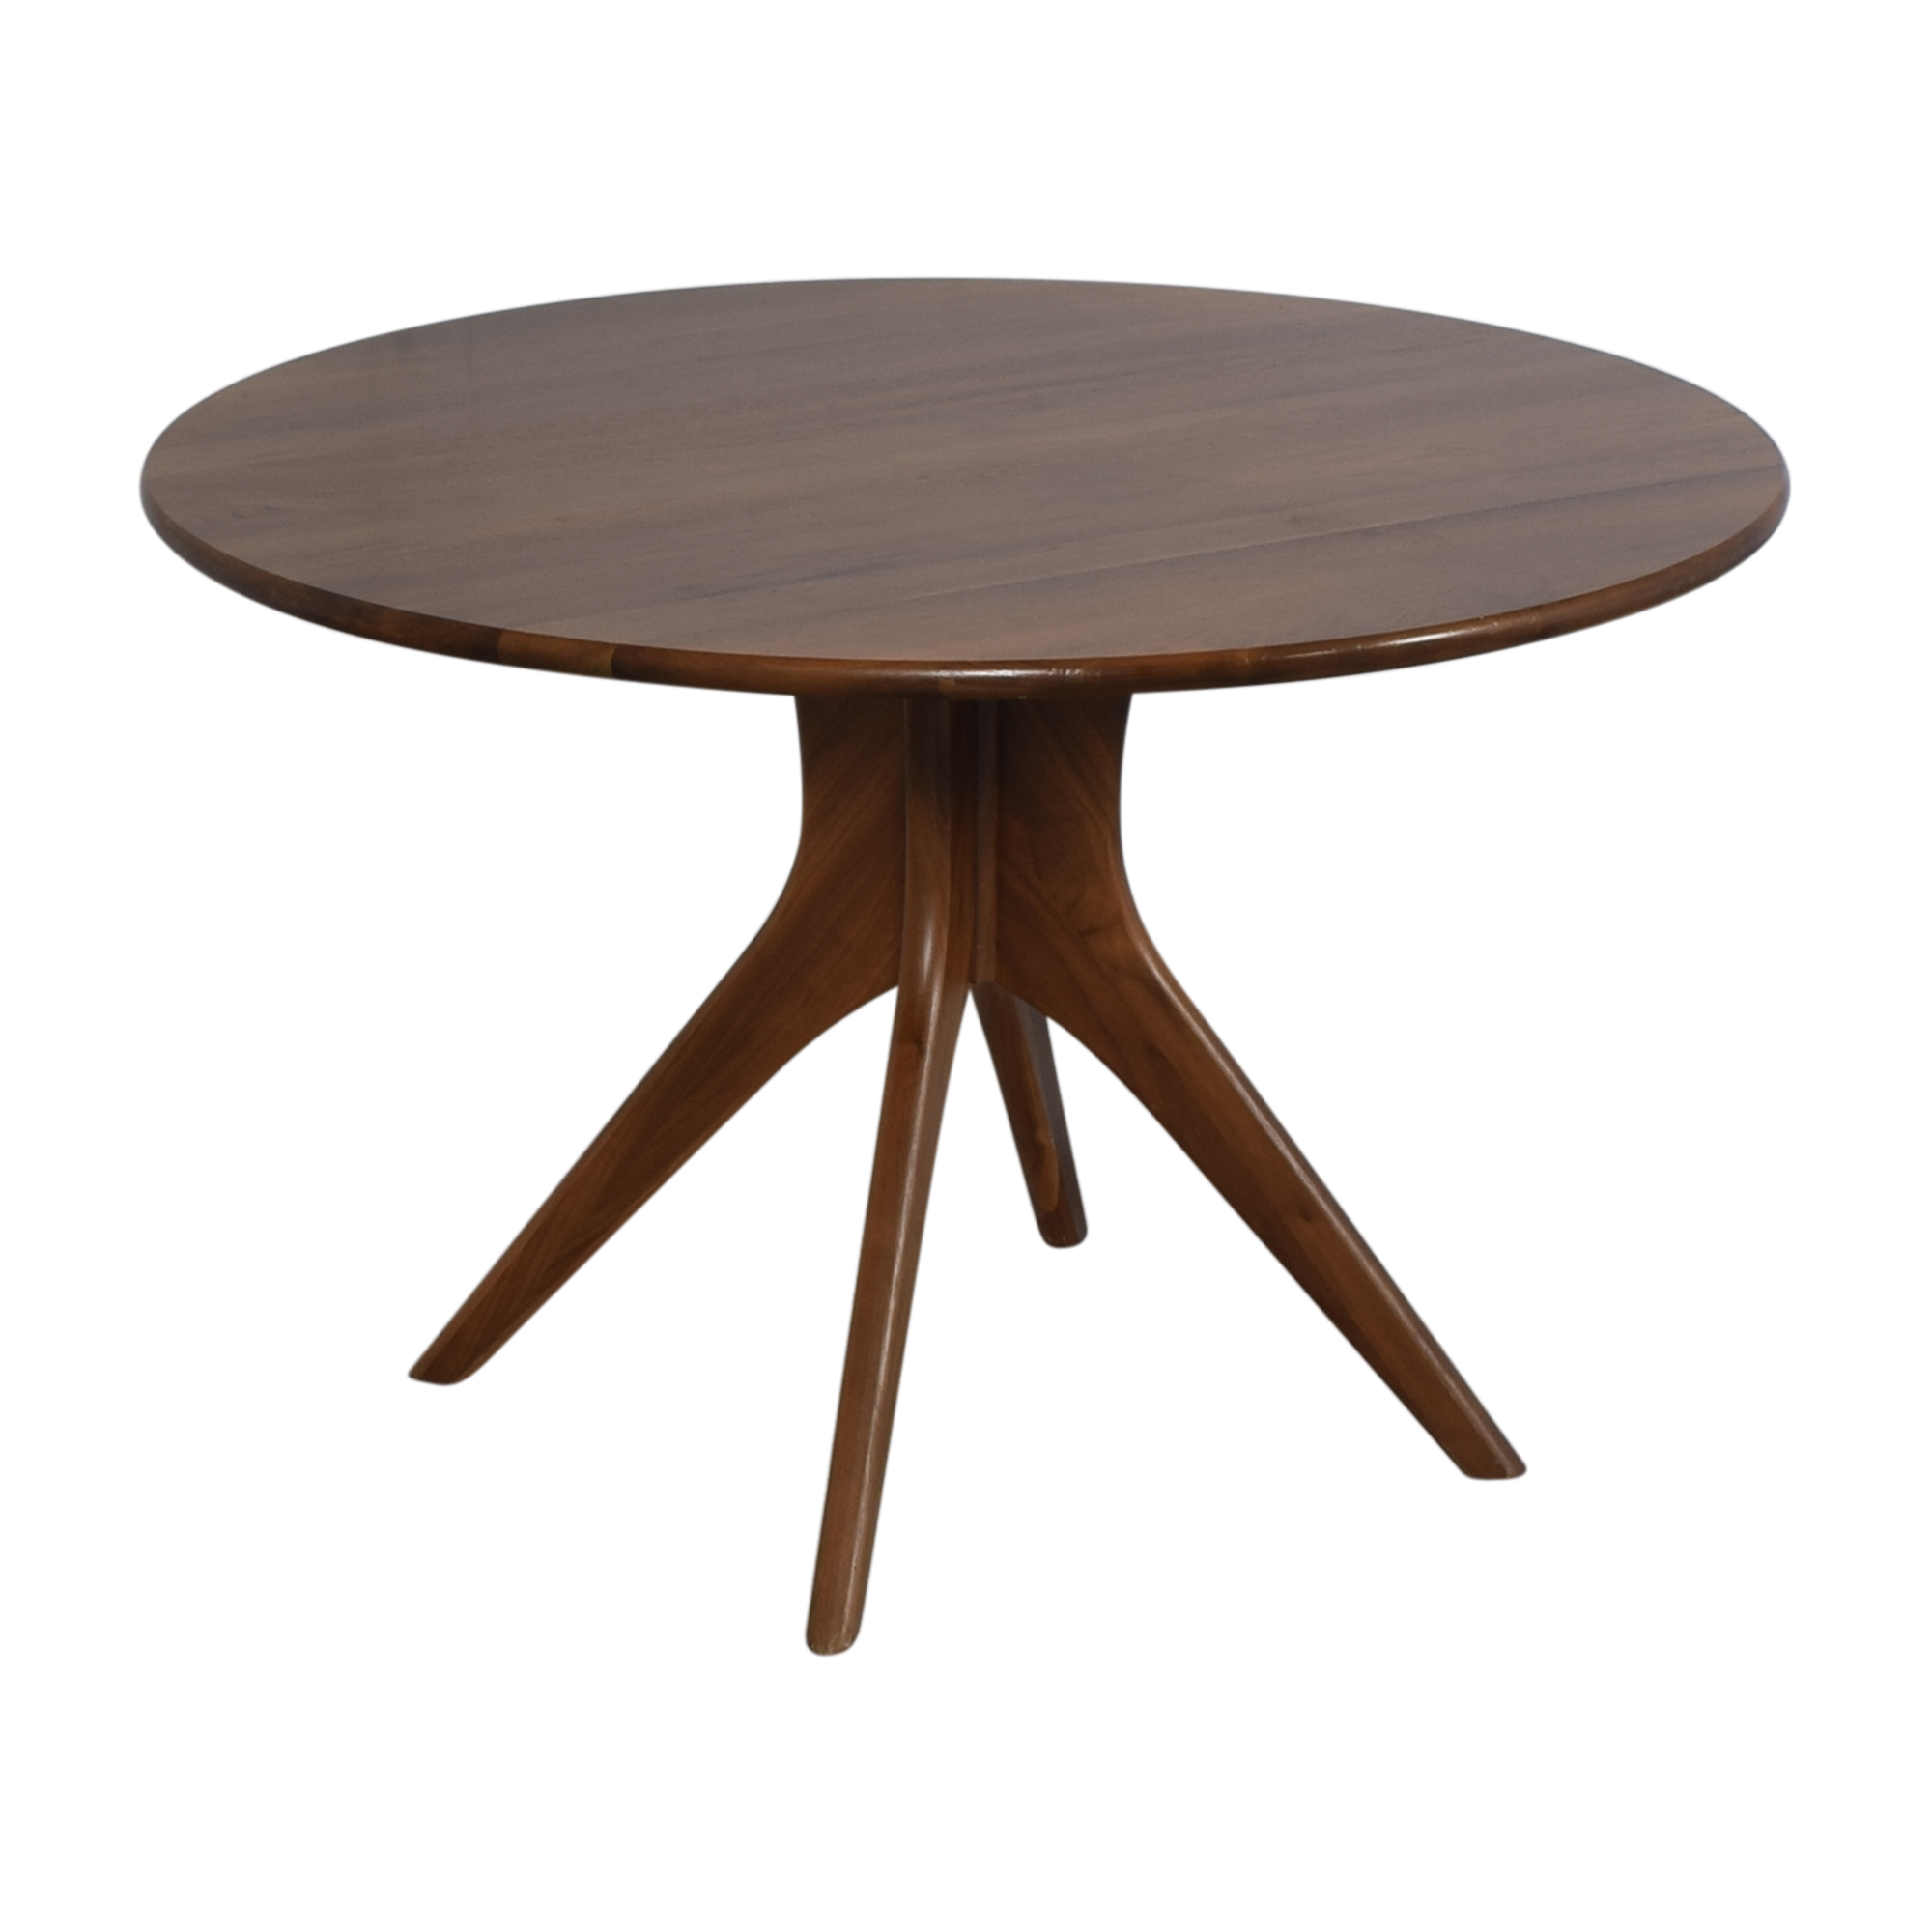 72 off room board room board round table tables